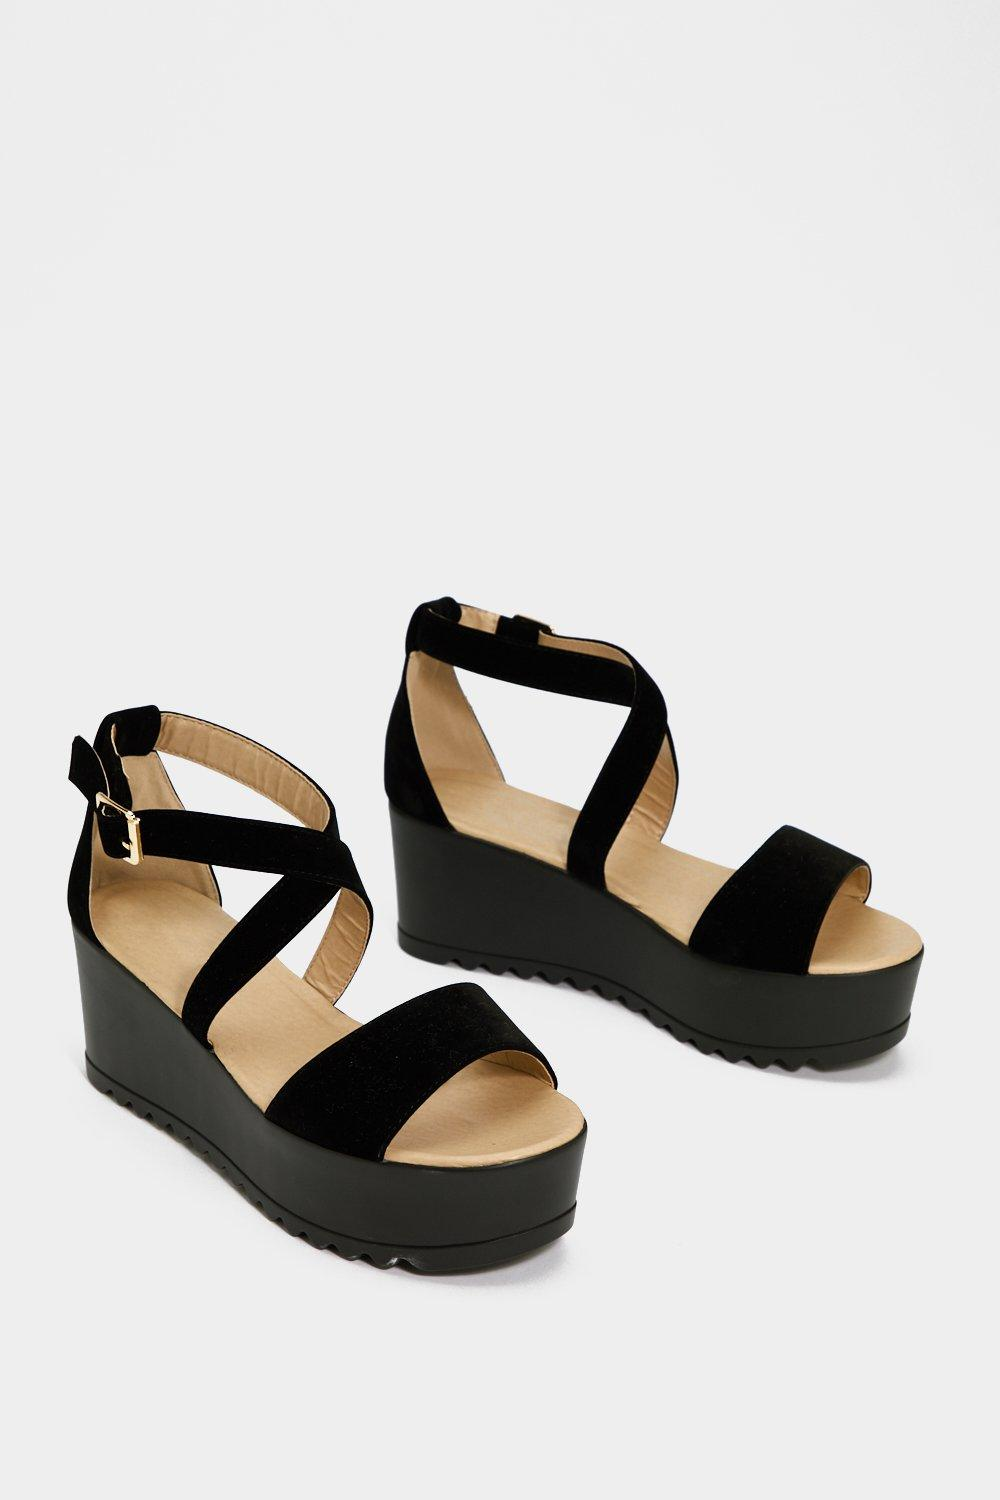 Don't Cross Me Faux Suede Sandal cheap high quality outlet how much 2014 unisex for sale sW4pTUb79